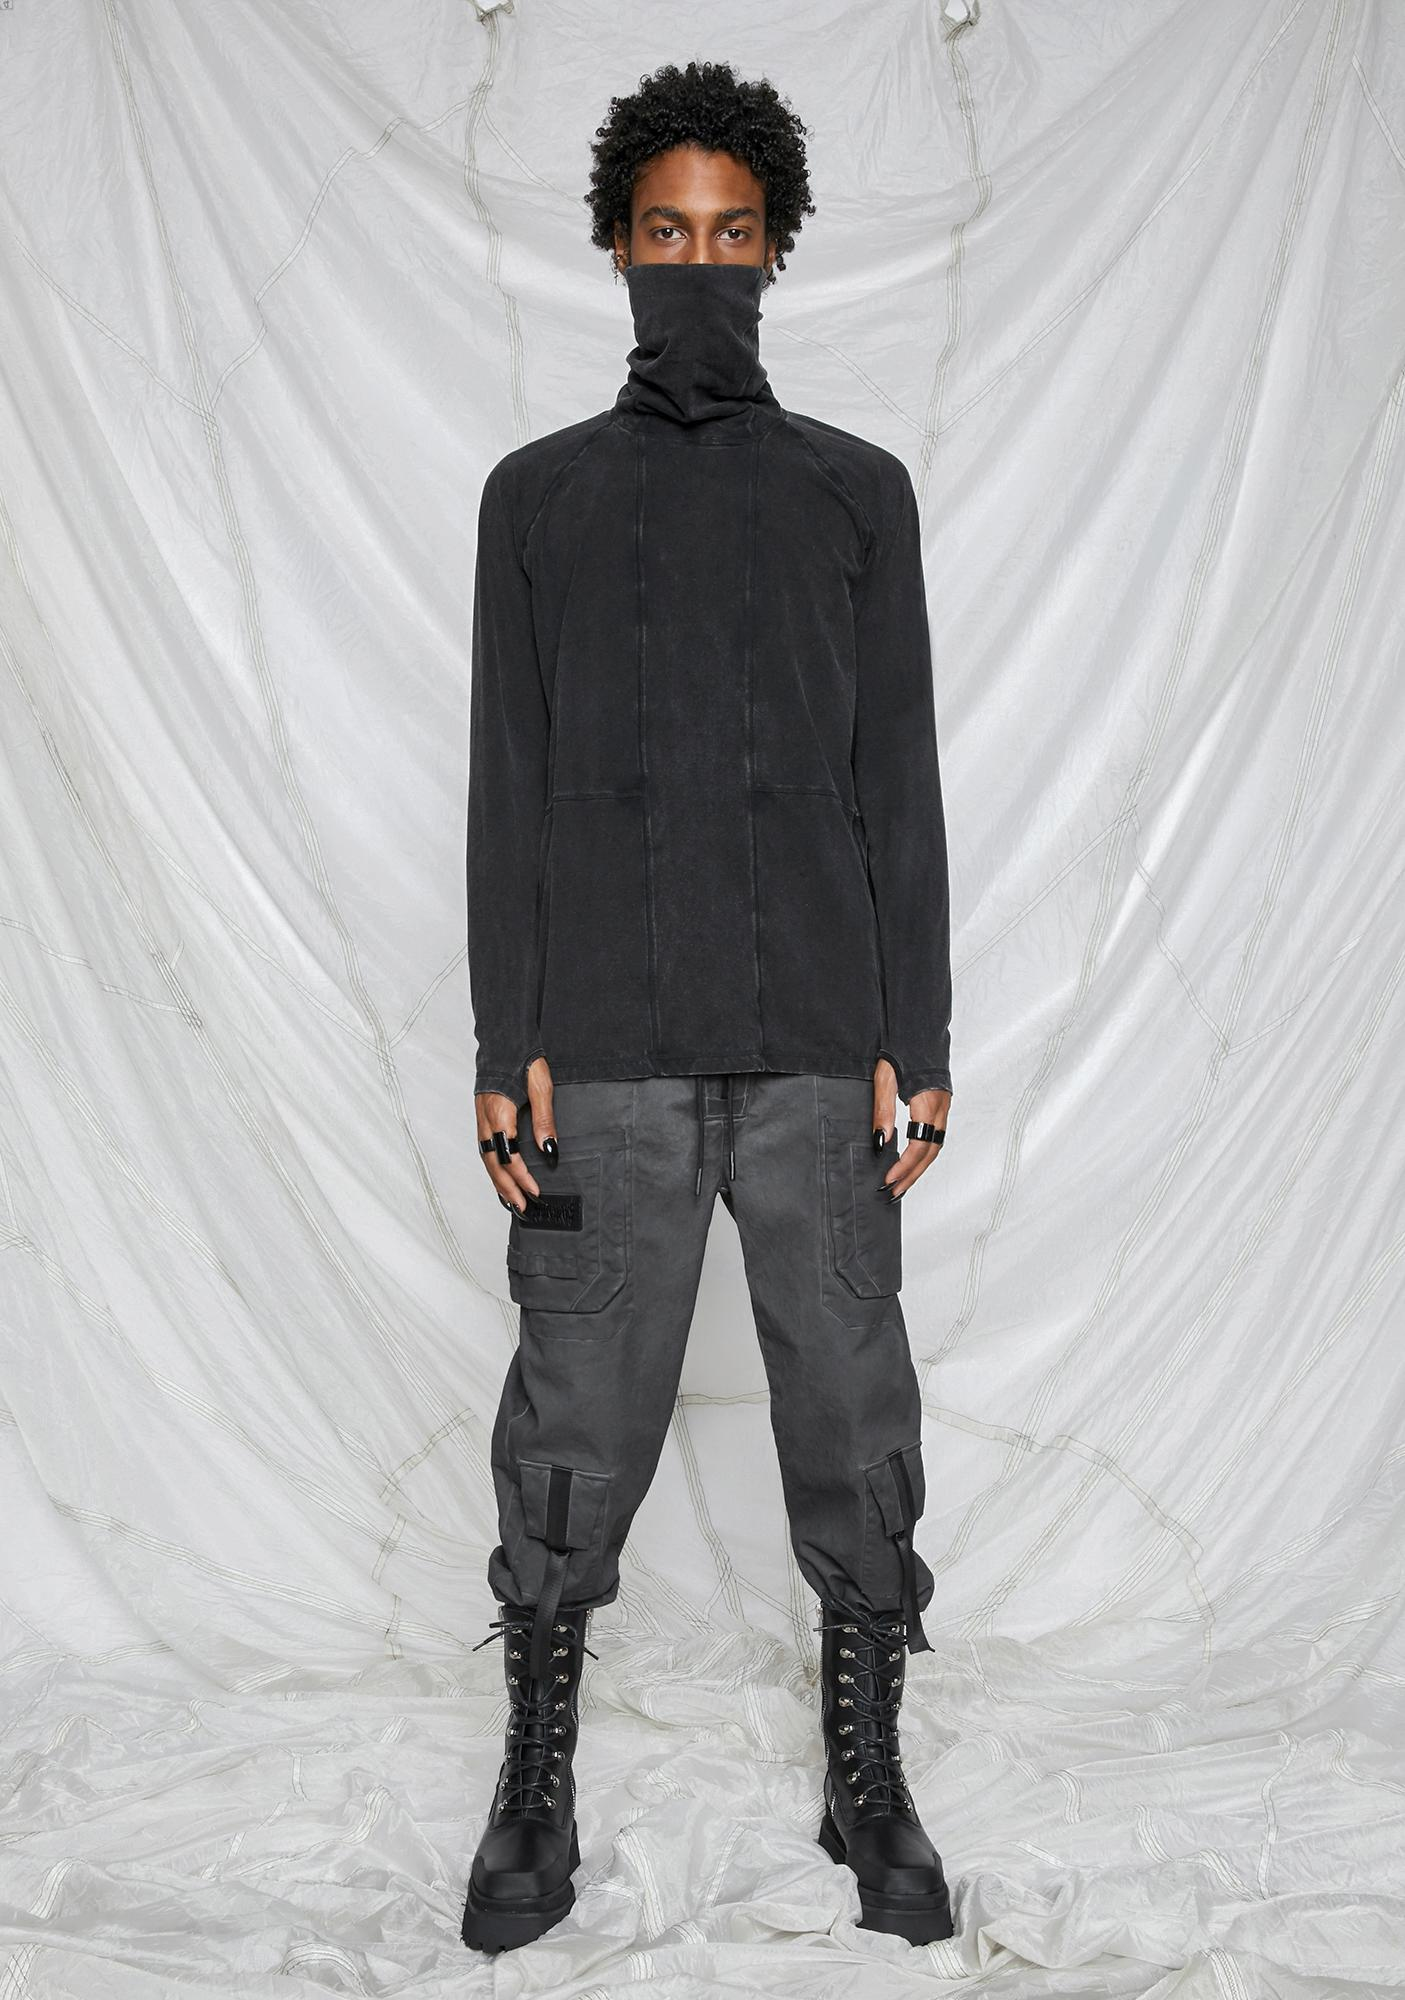 DARKER WAVS Synth Unisex Washed High Neck Mask Tee